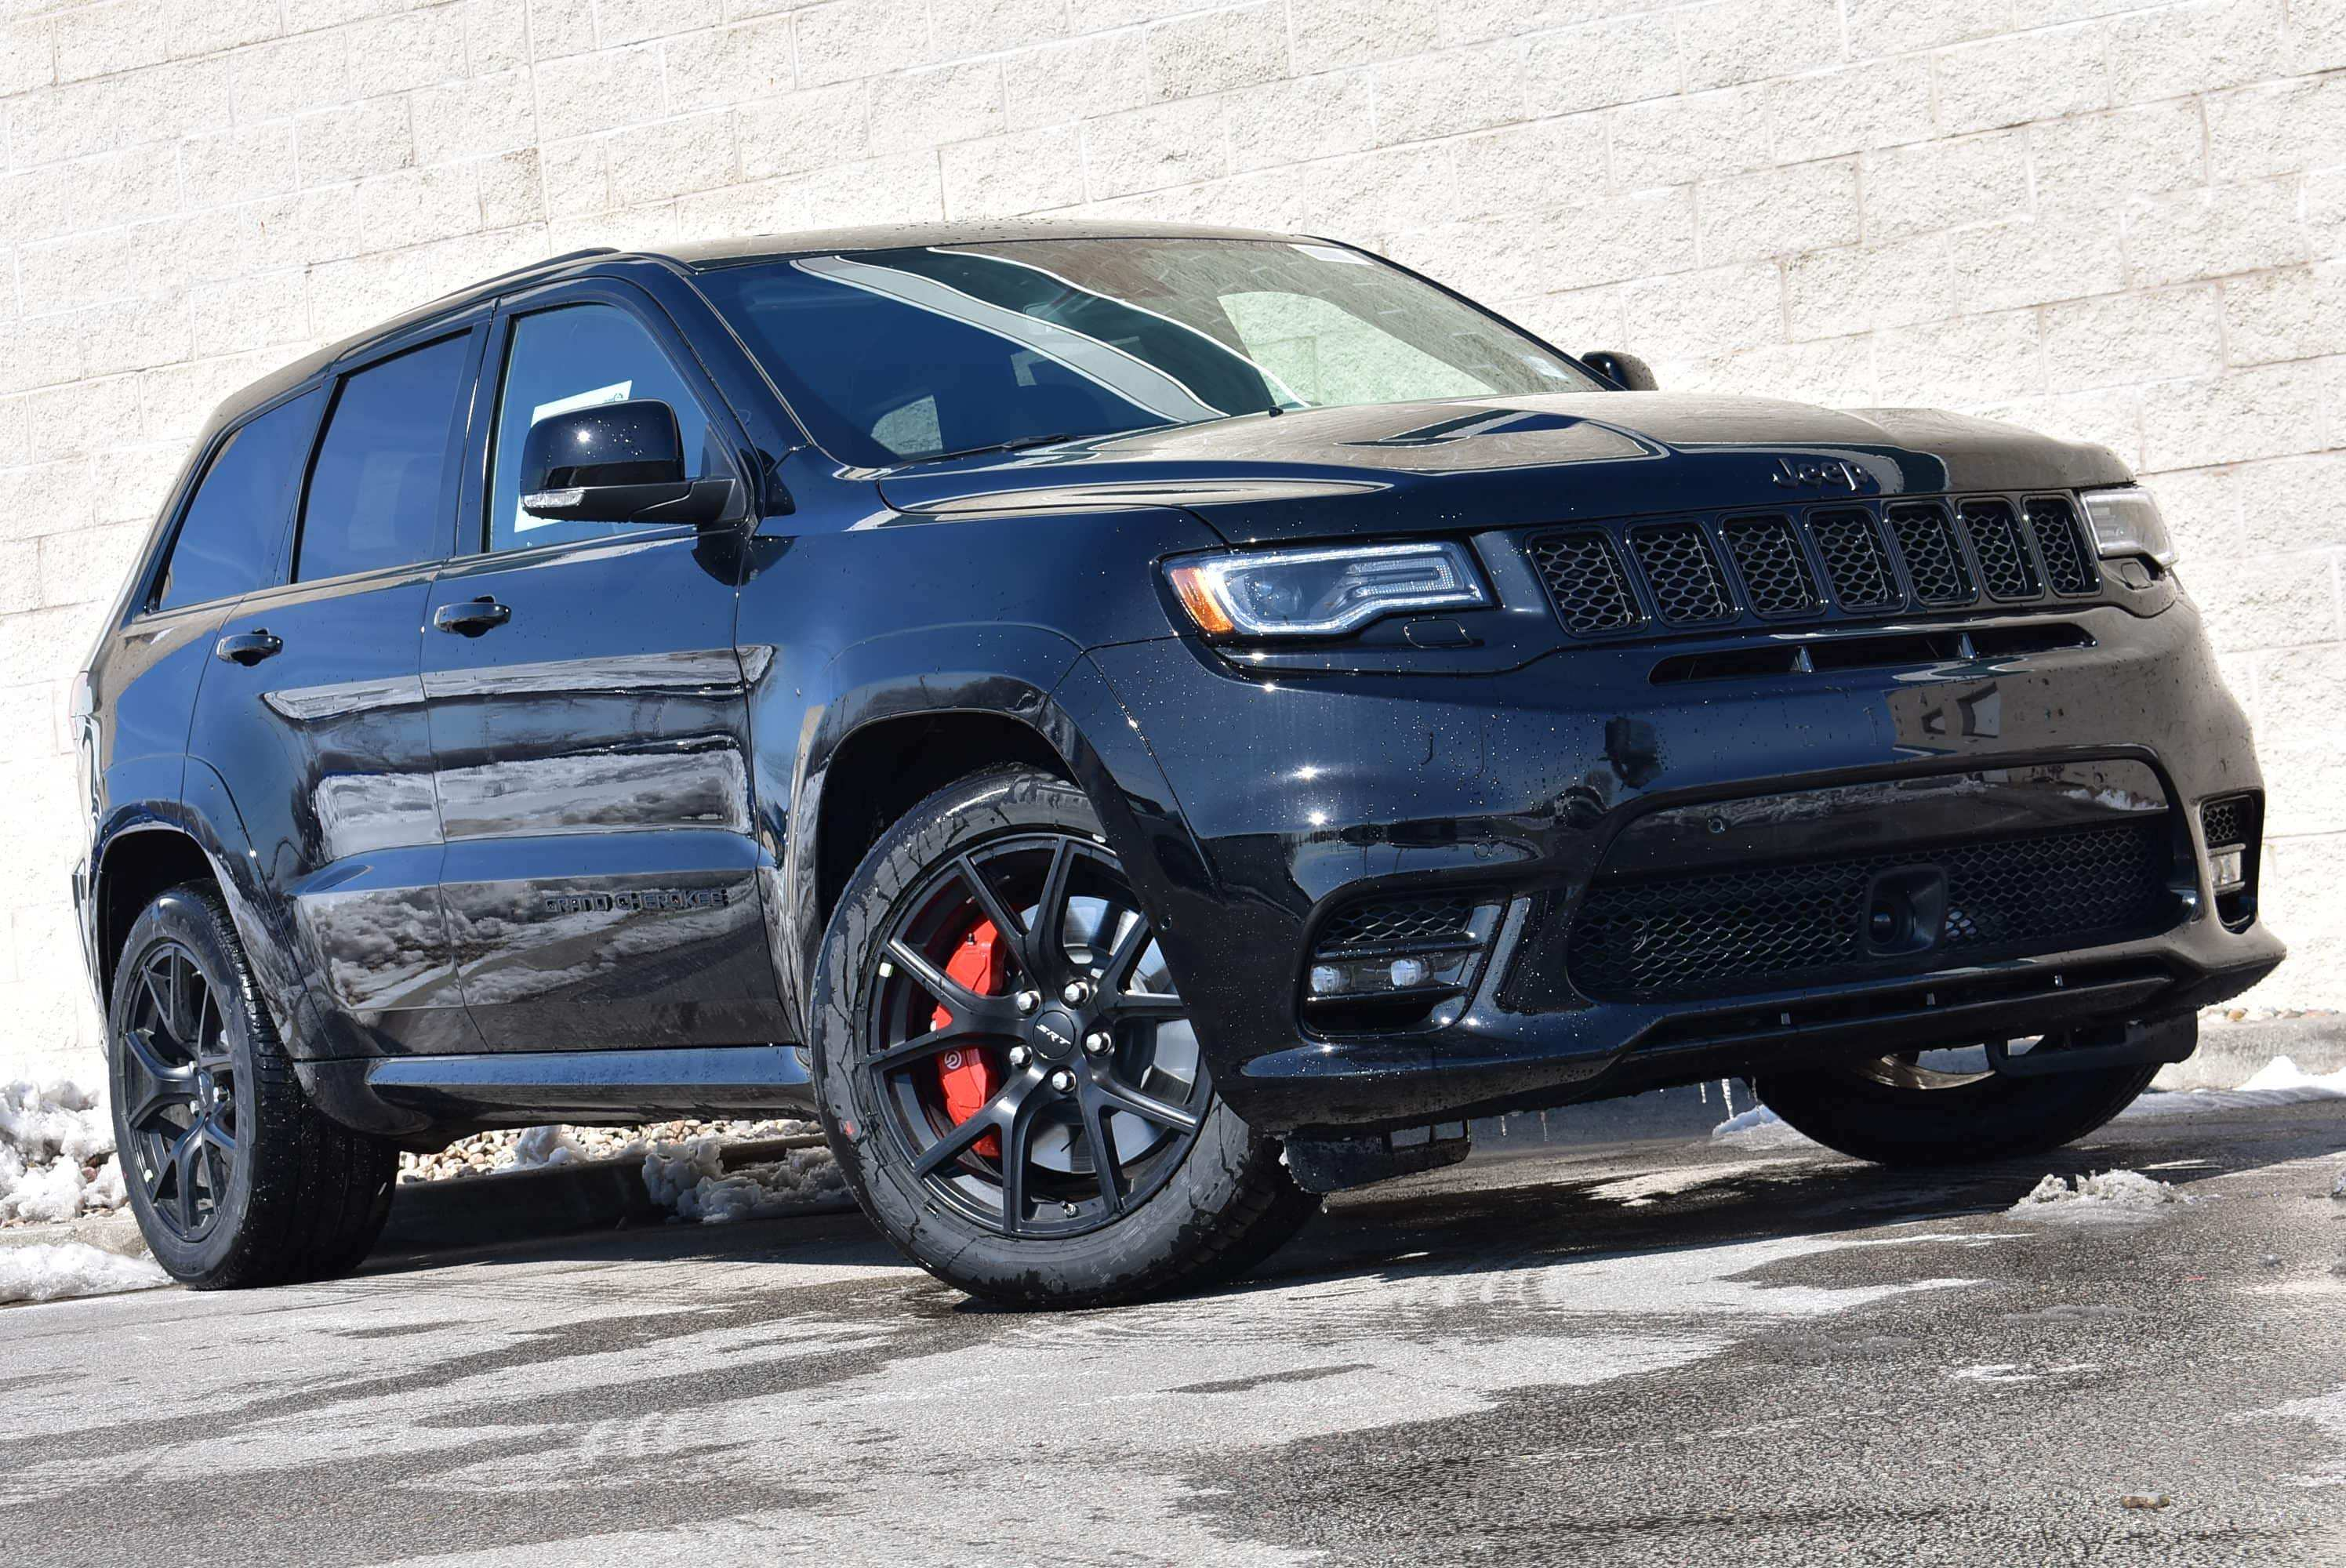 79 The Best 2019 Grand Cherokee Srt Model